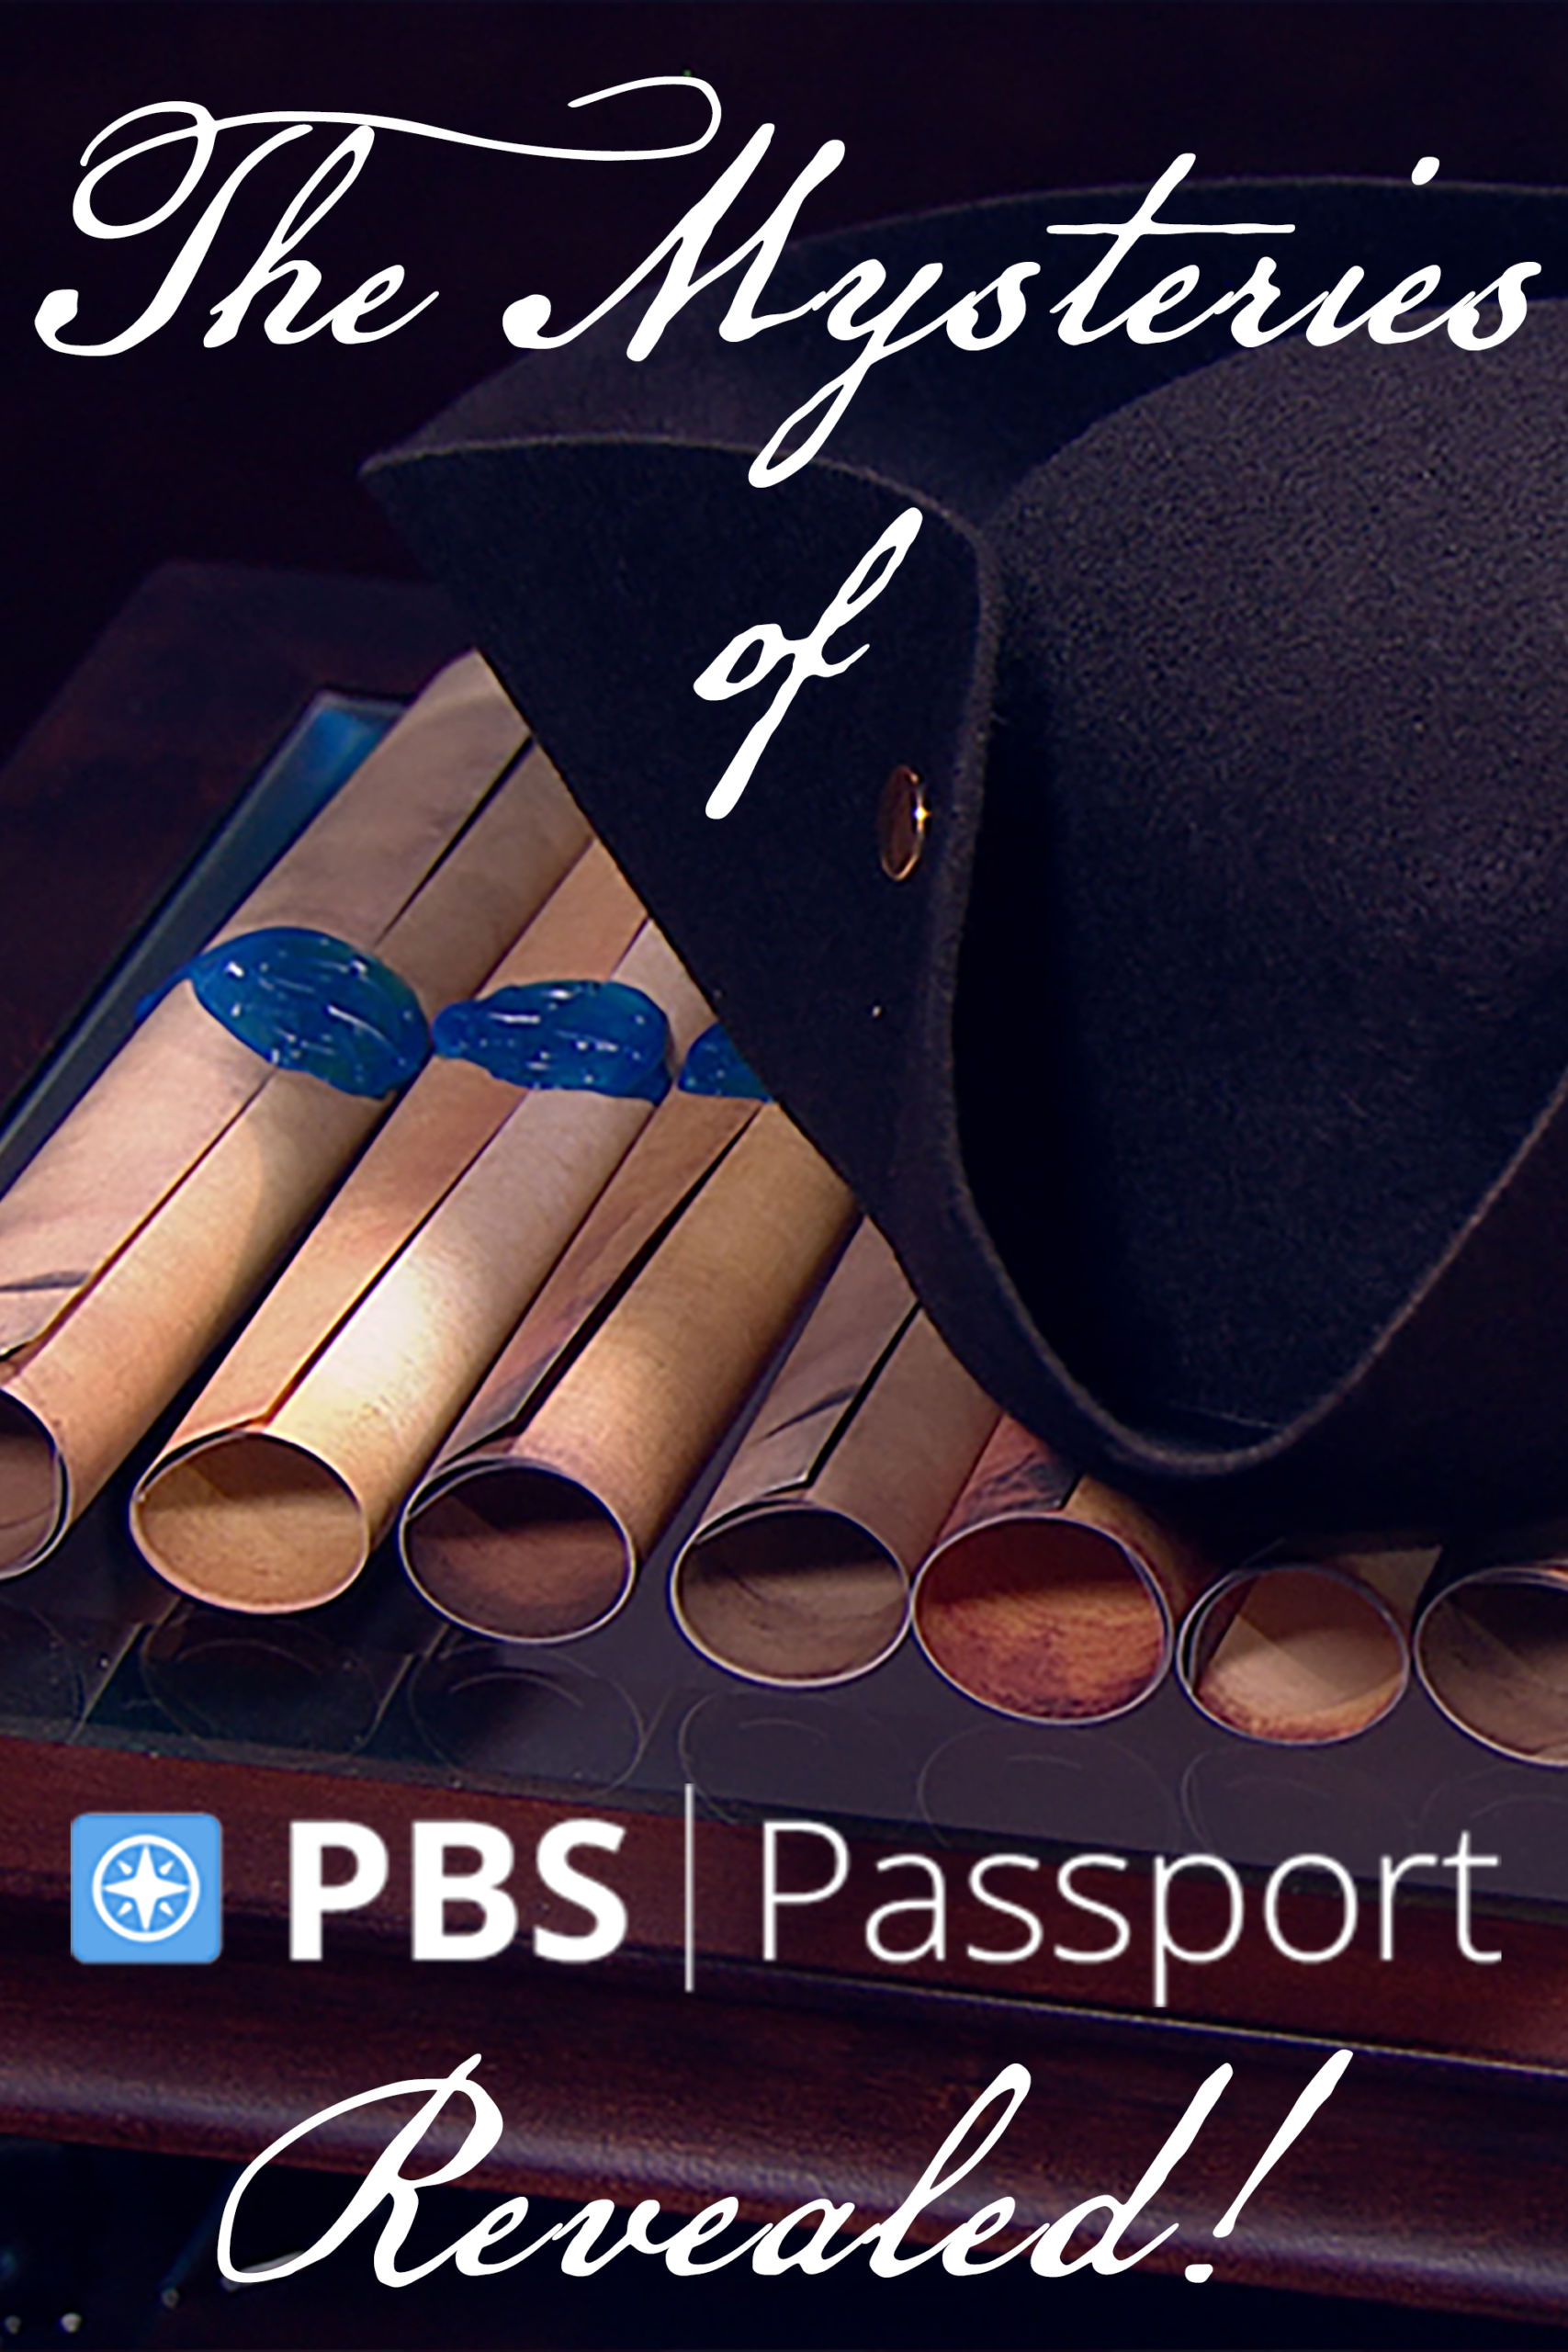 Mysteries of PBS Passport Revealed